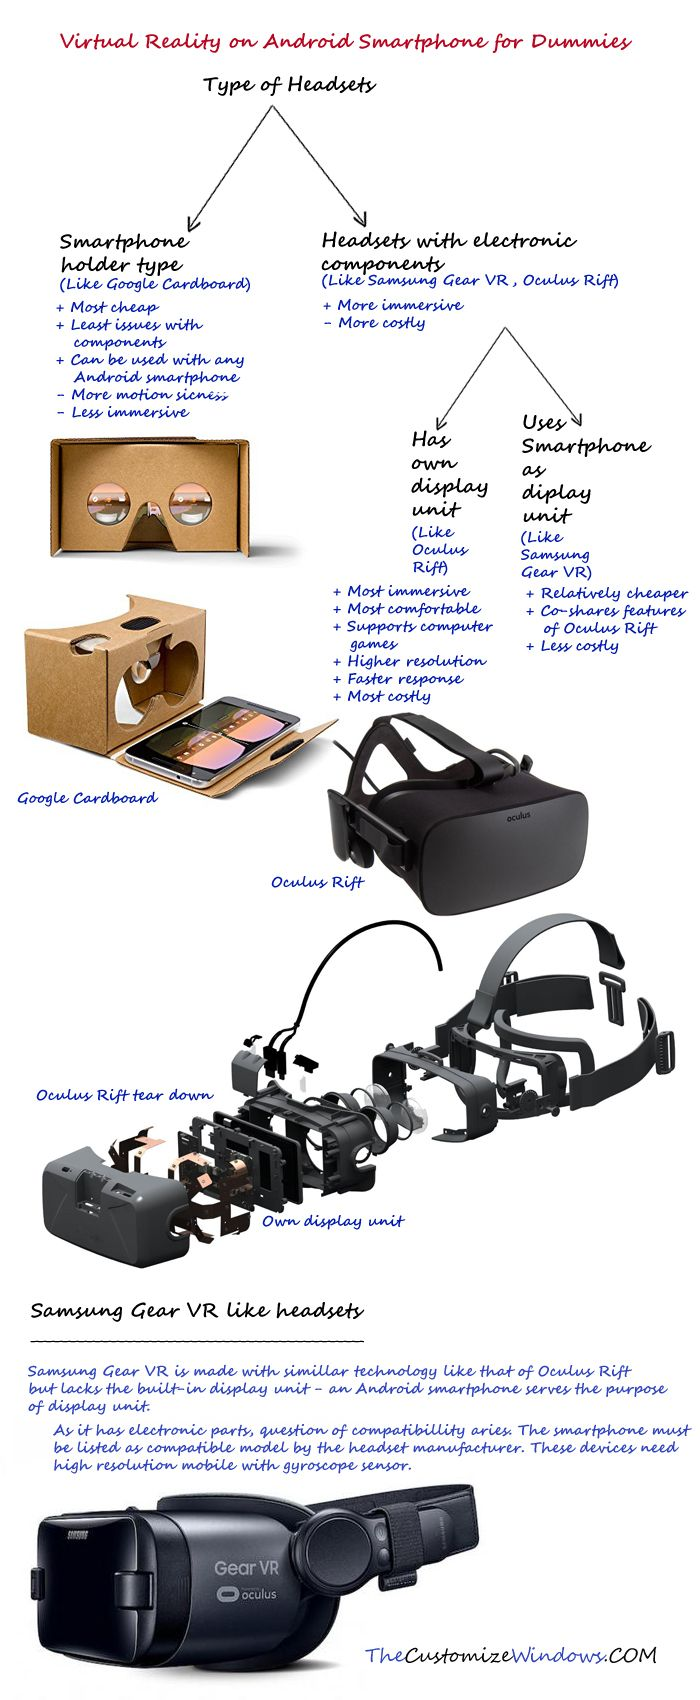 Virtual Reality on Android Smartphone for Dummies Smart